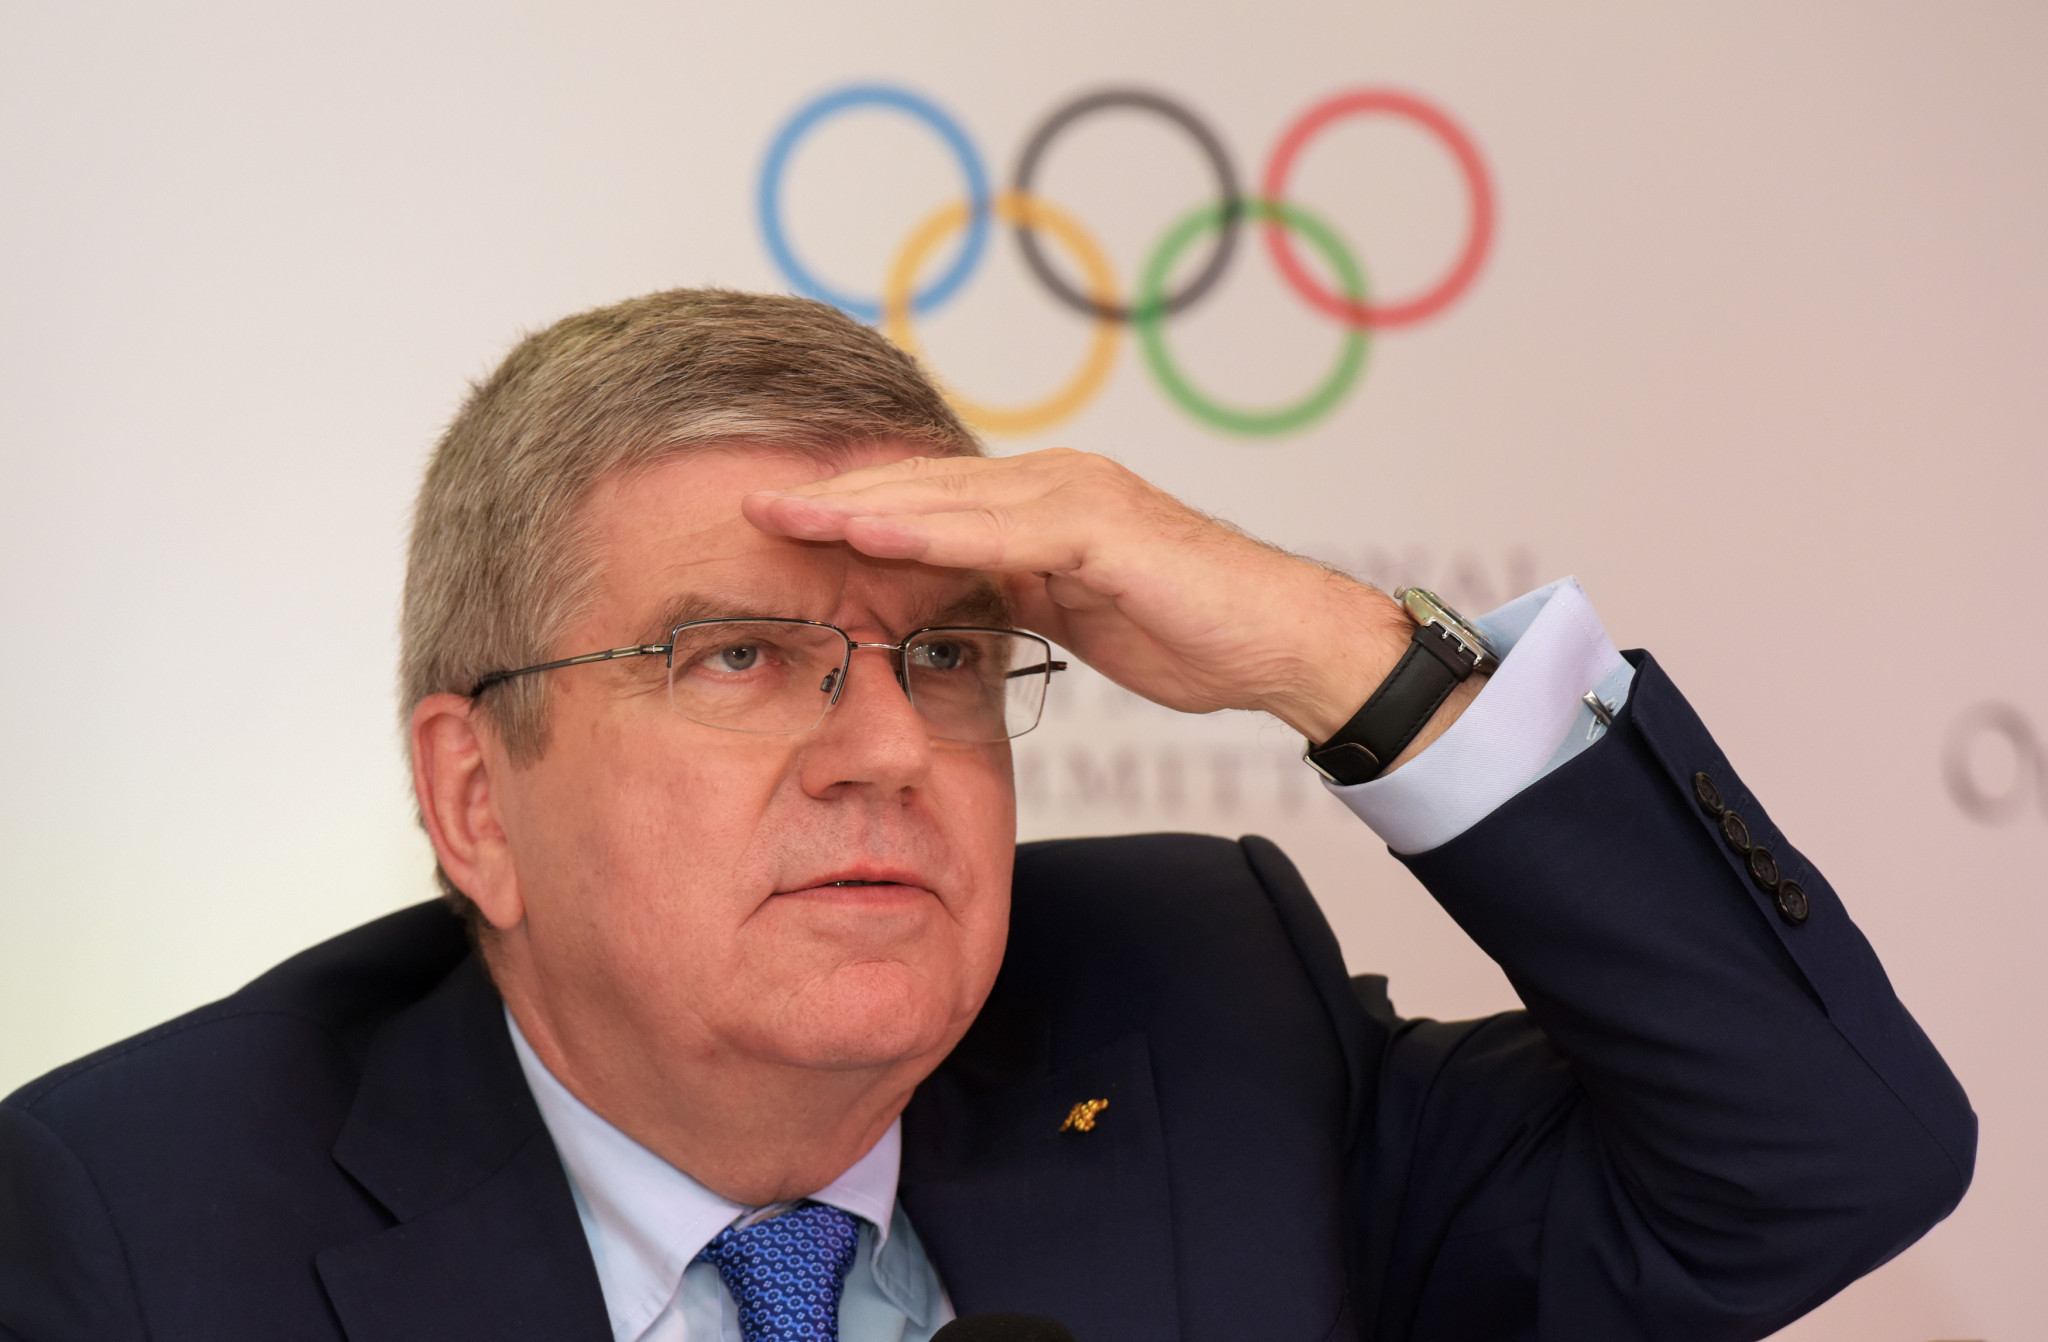 Bach invites German athletes to Lausanne to explain funding model